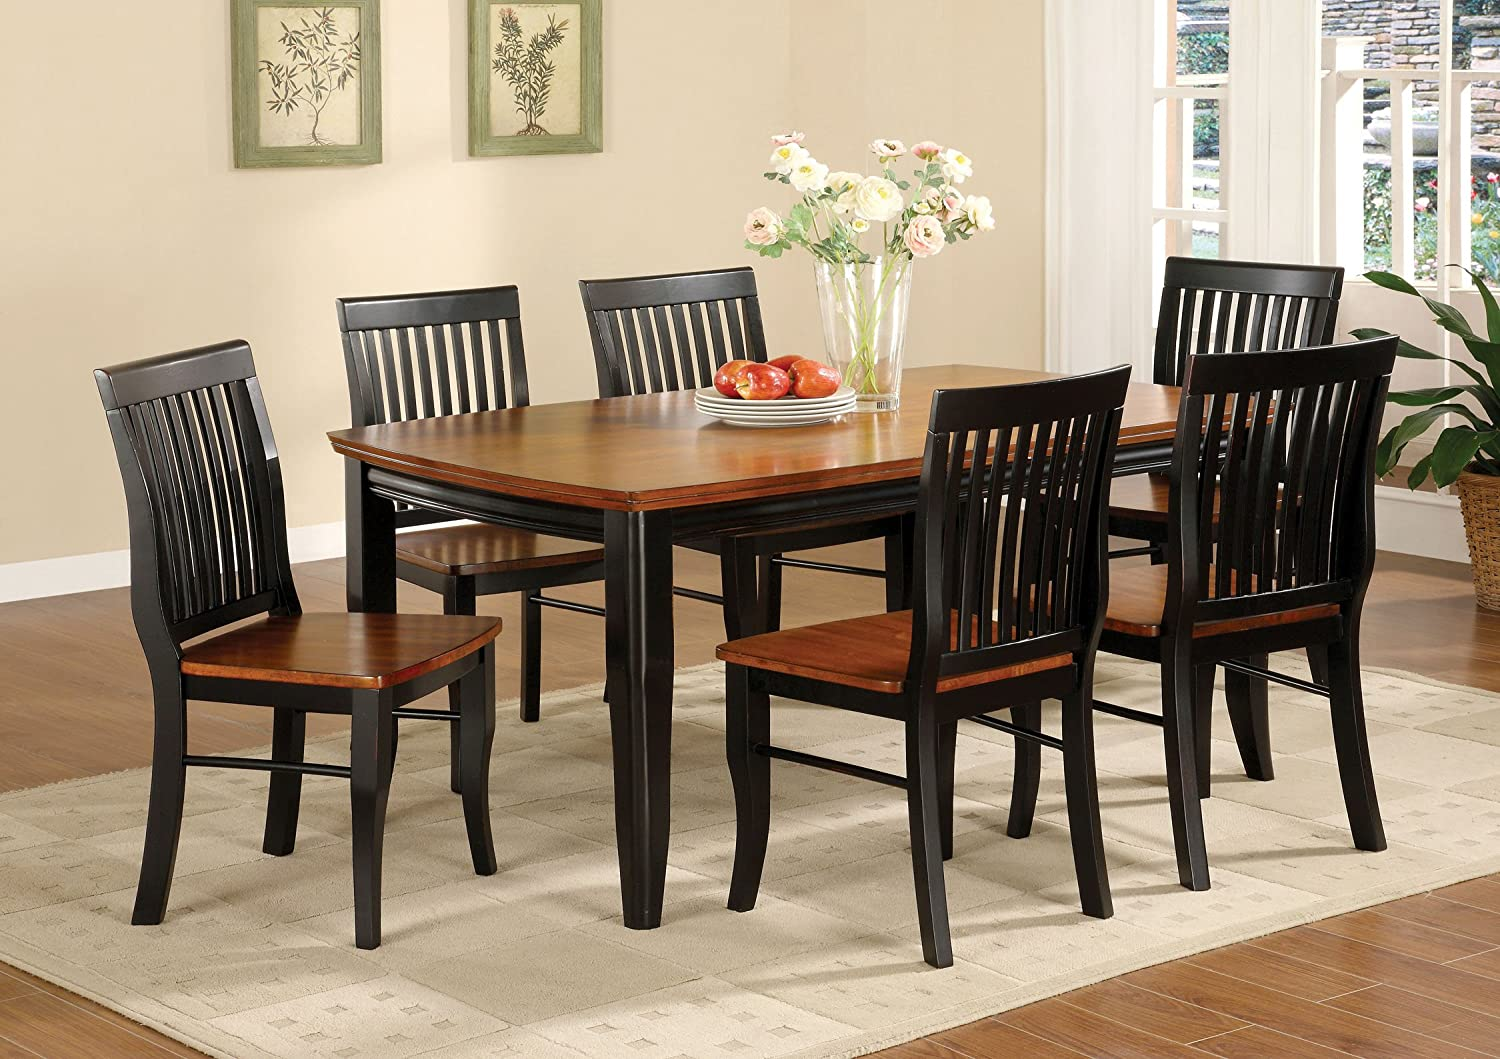 Beautiful Amazon.com   Furniture Of America Charleston Mission Style Rectangular Dining  Table, Antique Black And Oak   Tables